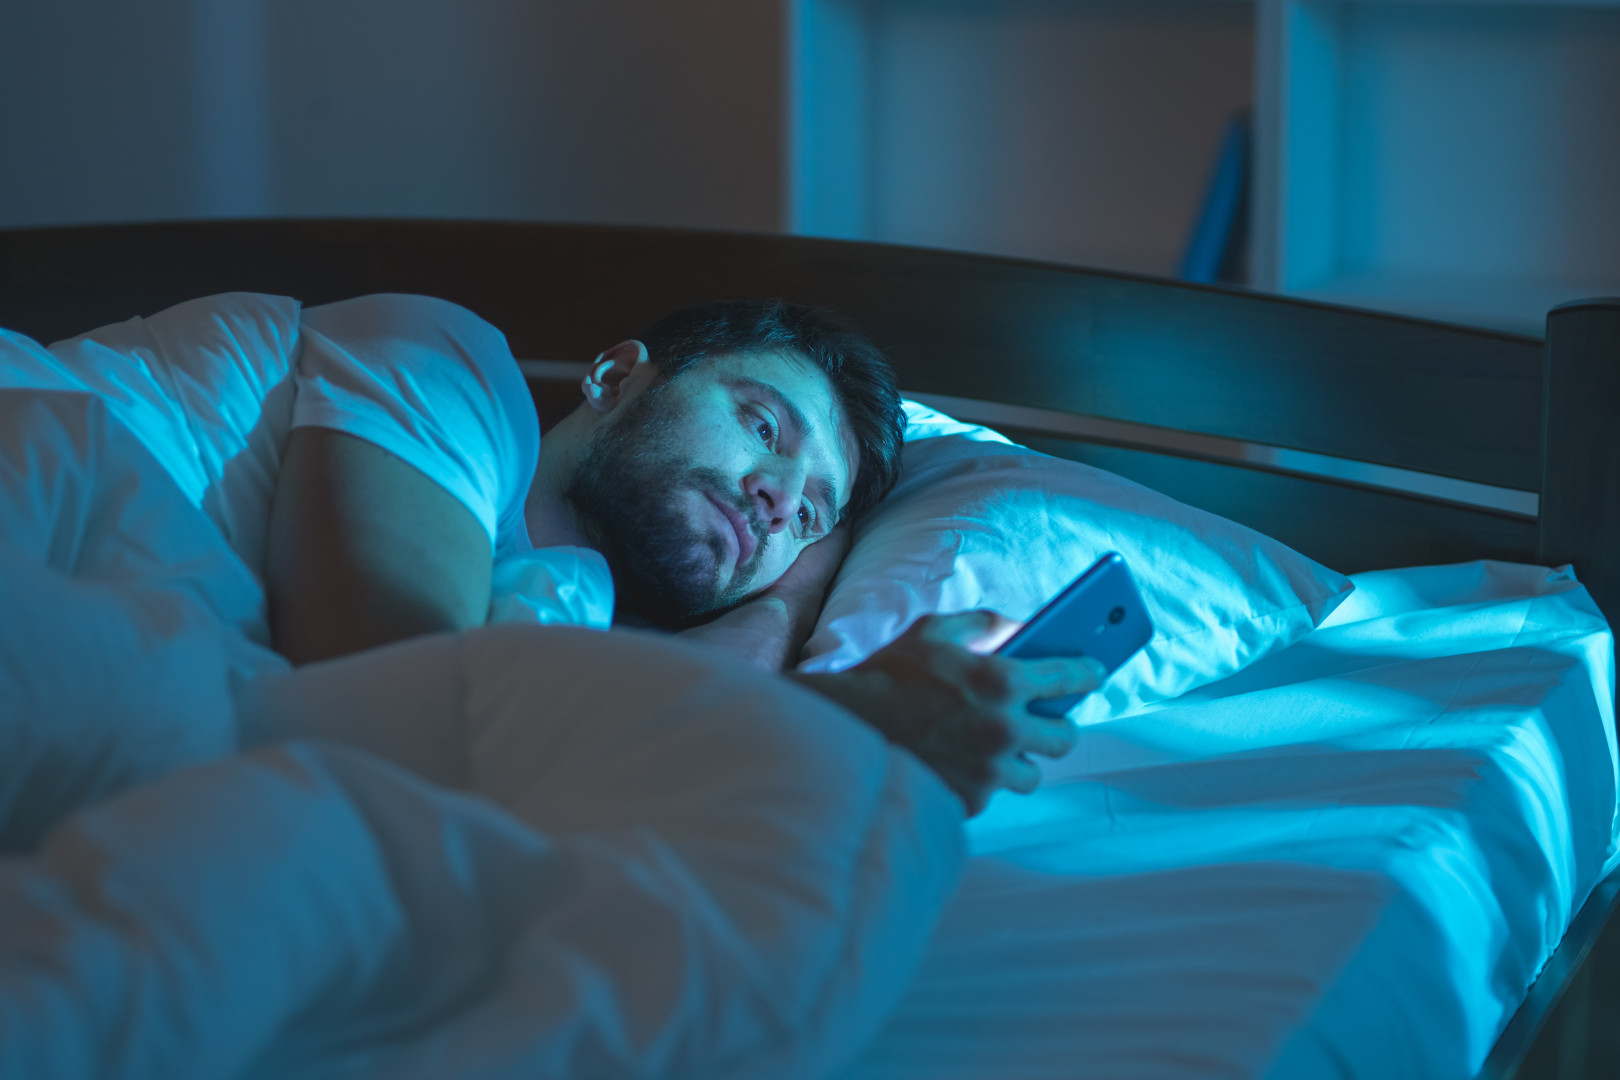 Lonely man looking at phone in bed